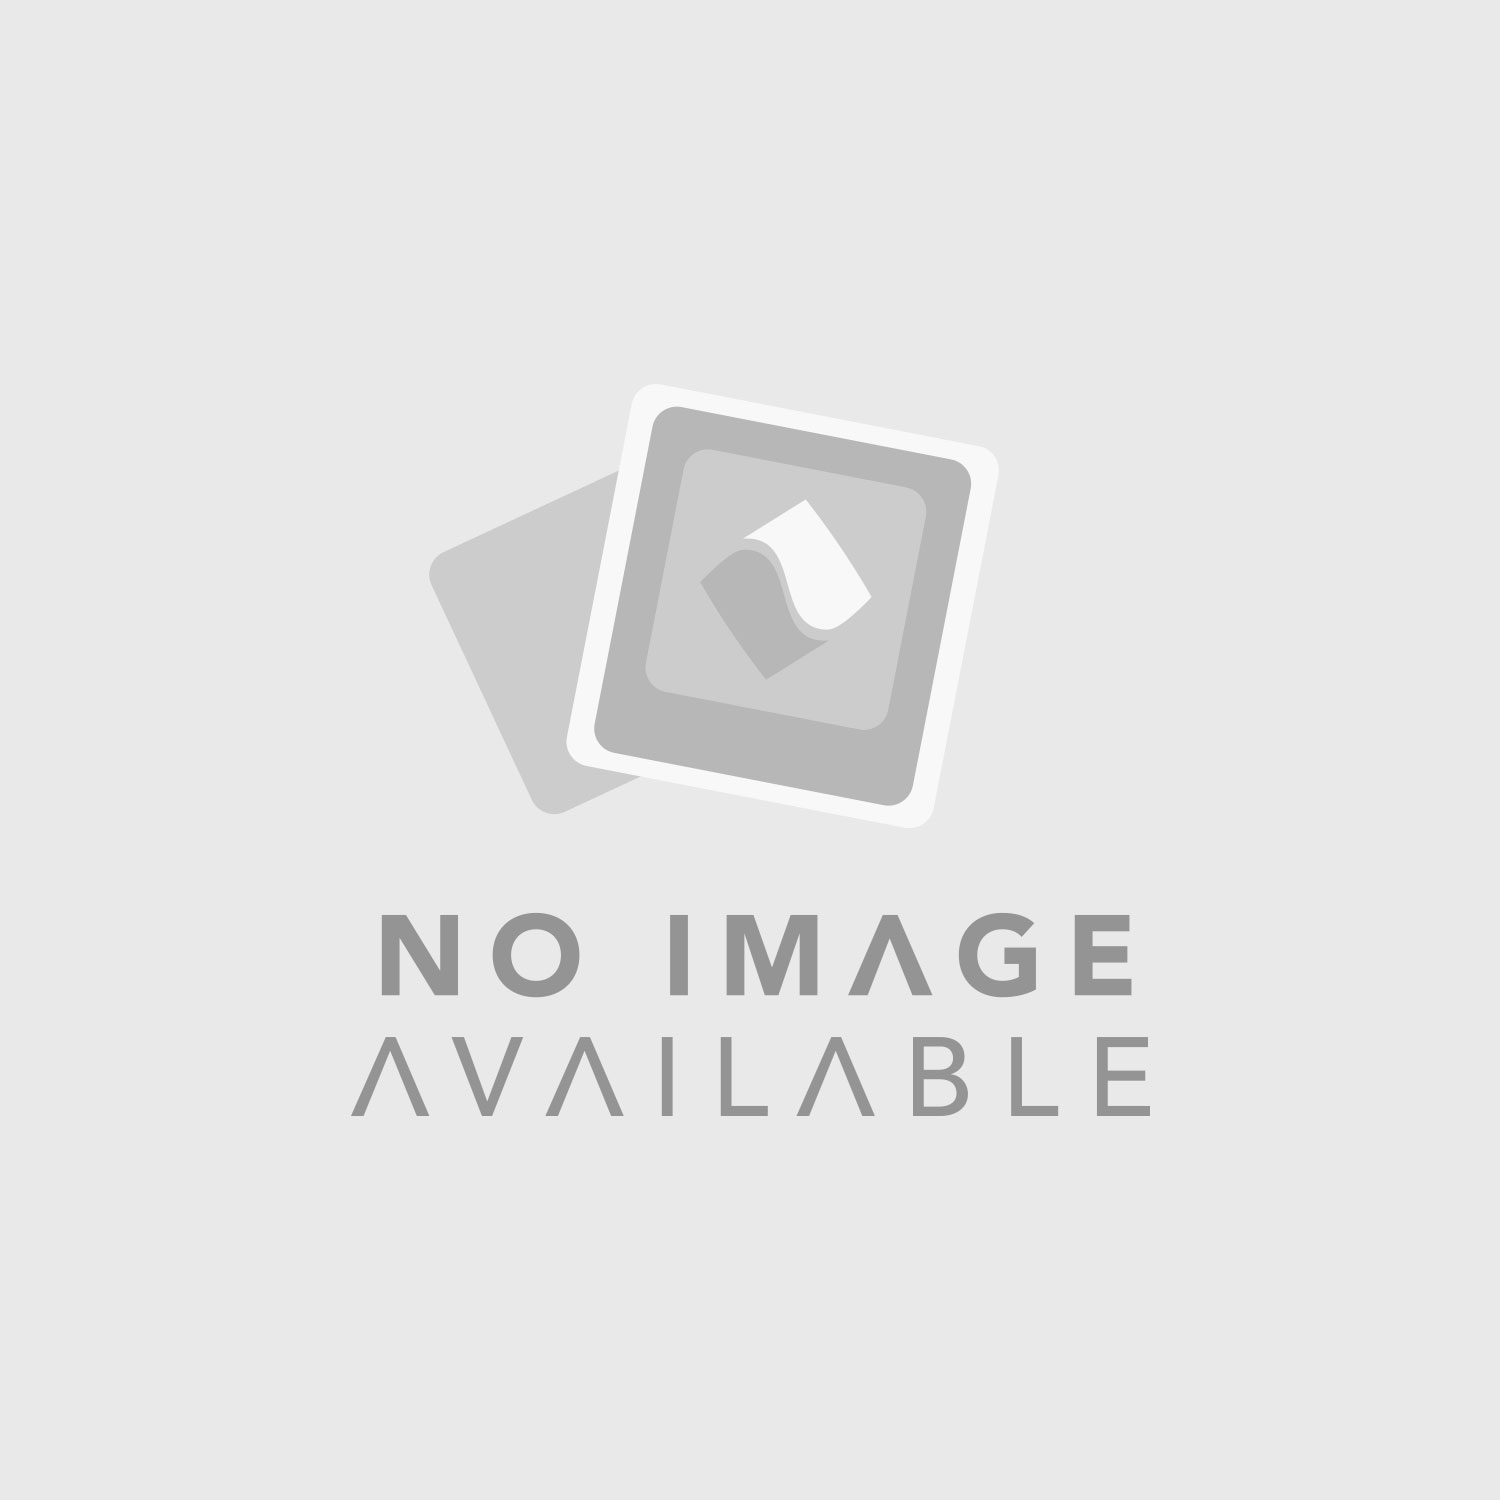 Rode Reporter Interview Microphone